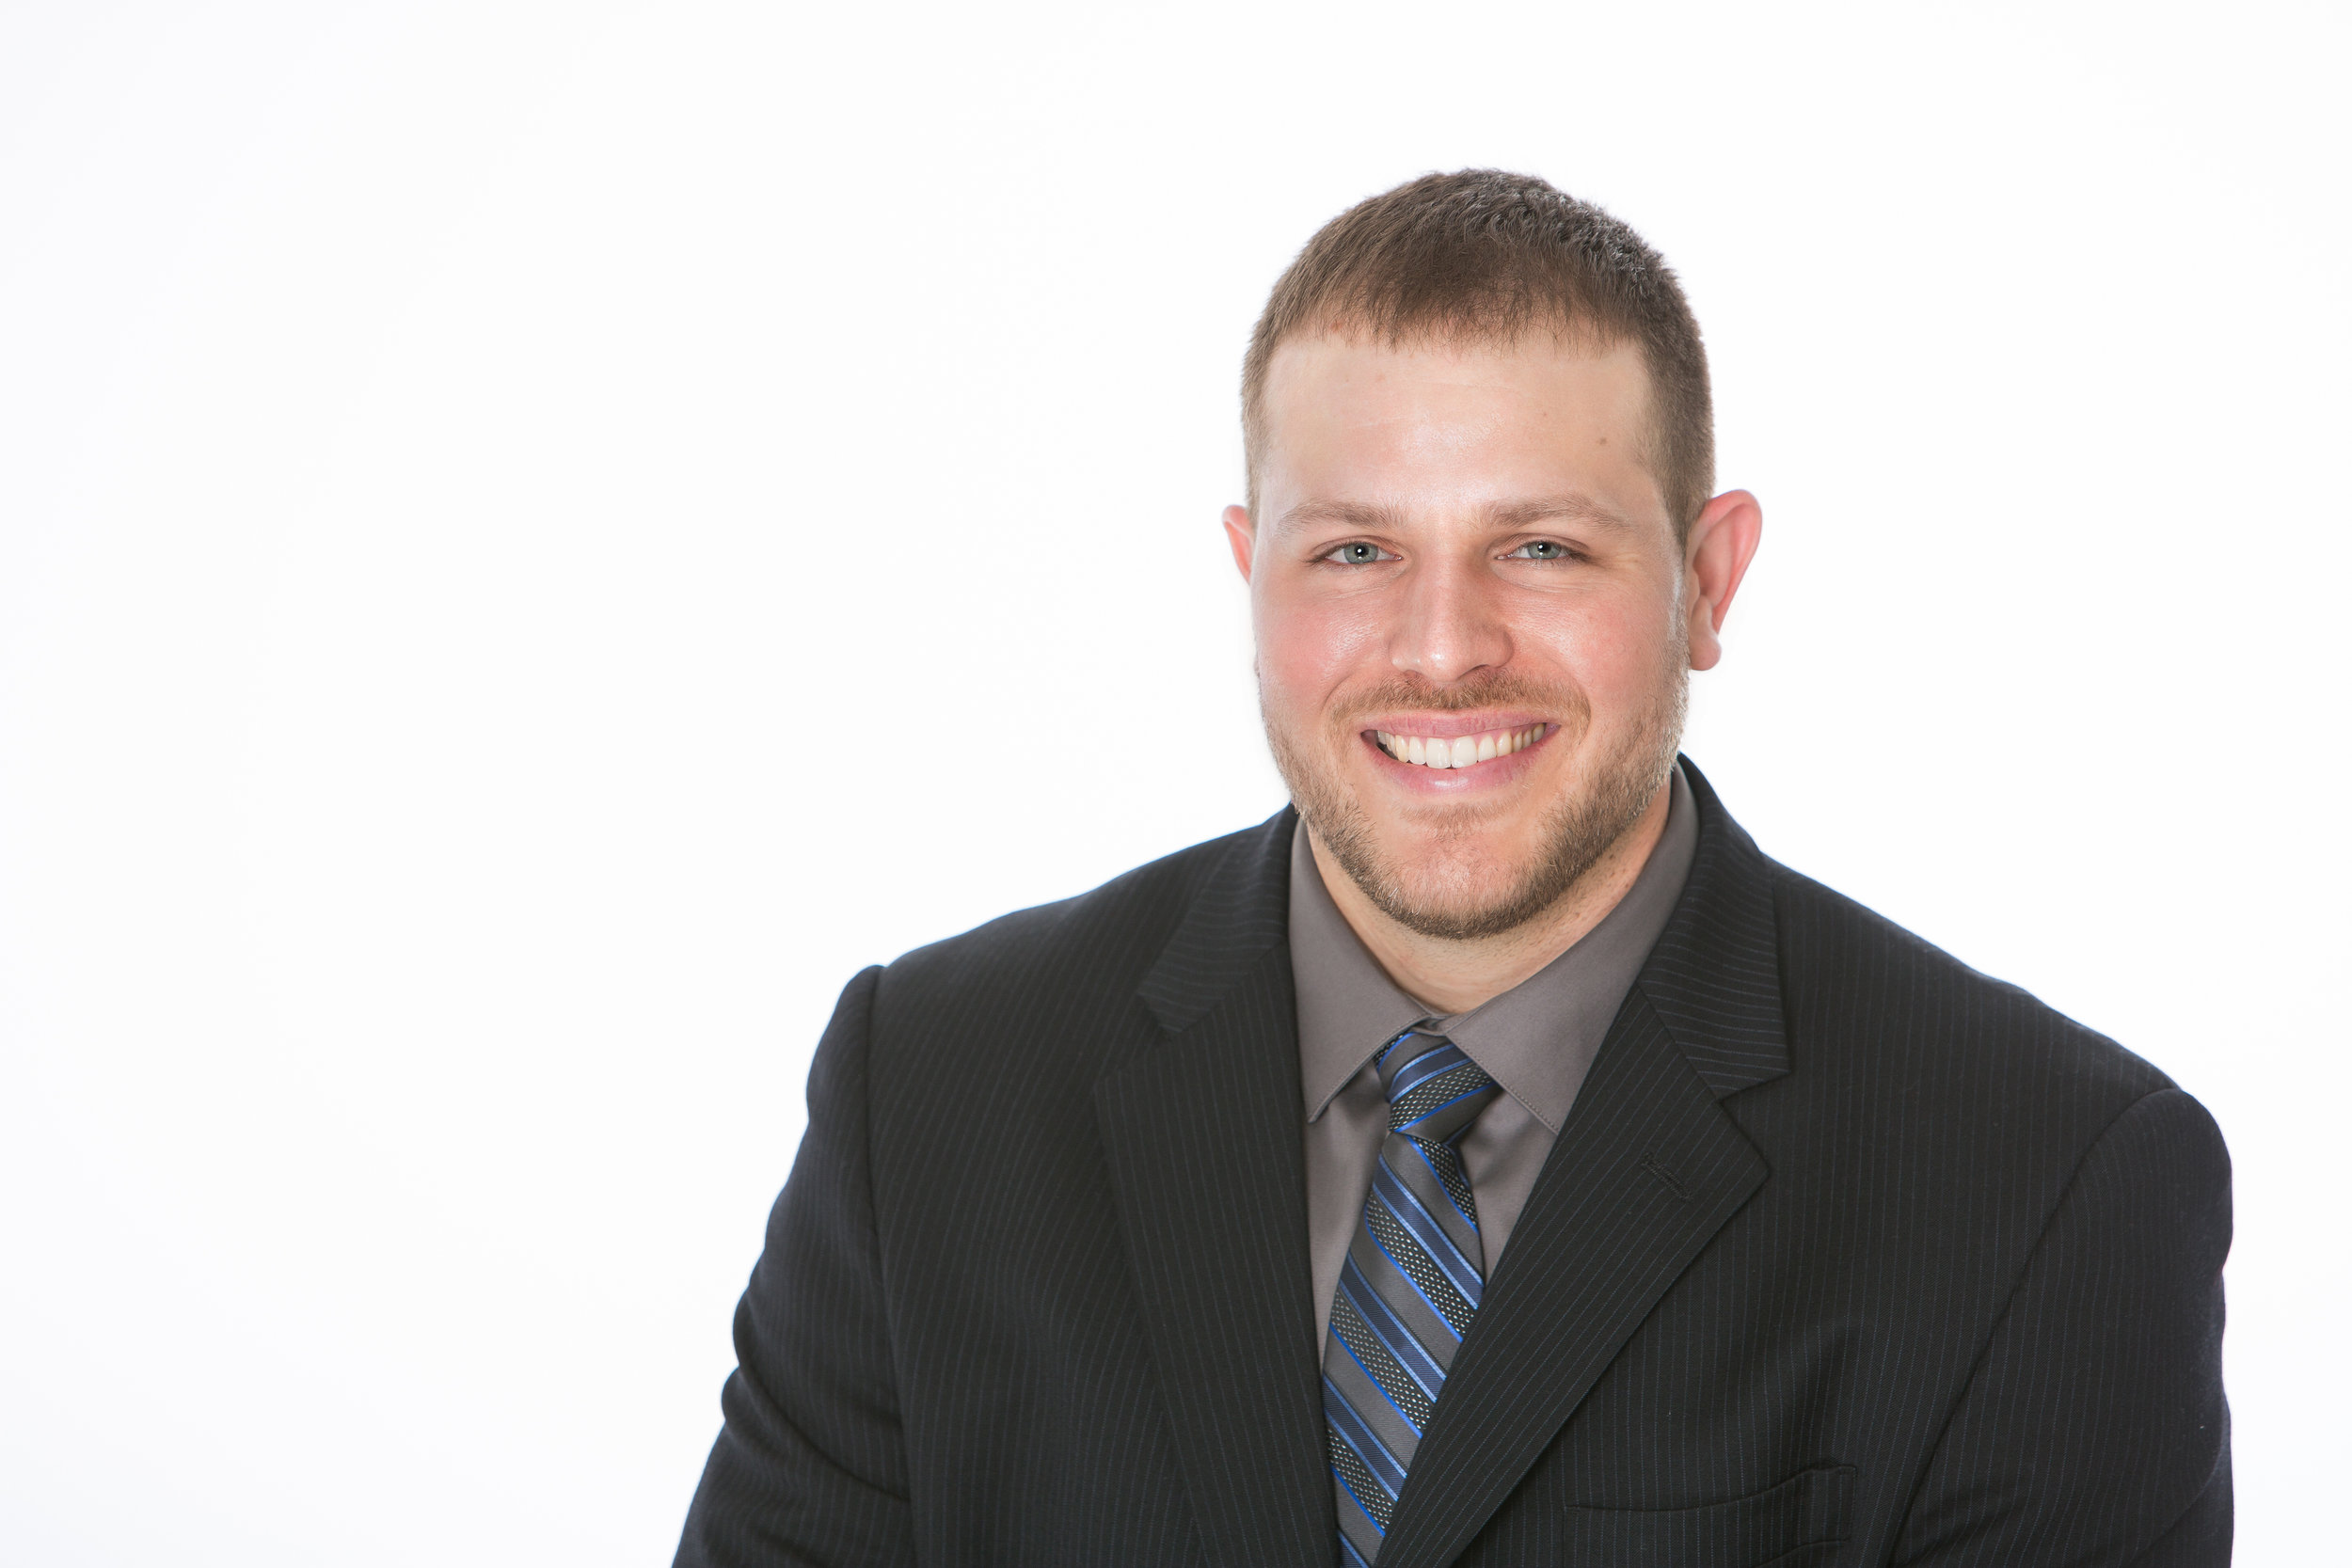 Nick Sanders PT, DPT CSCS, CIDN - Founder / Physical Therapist